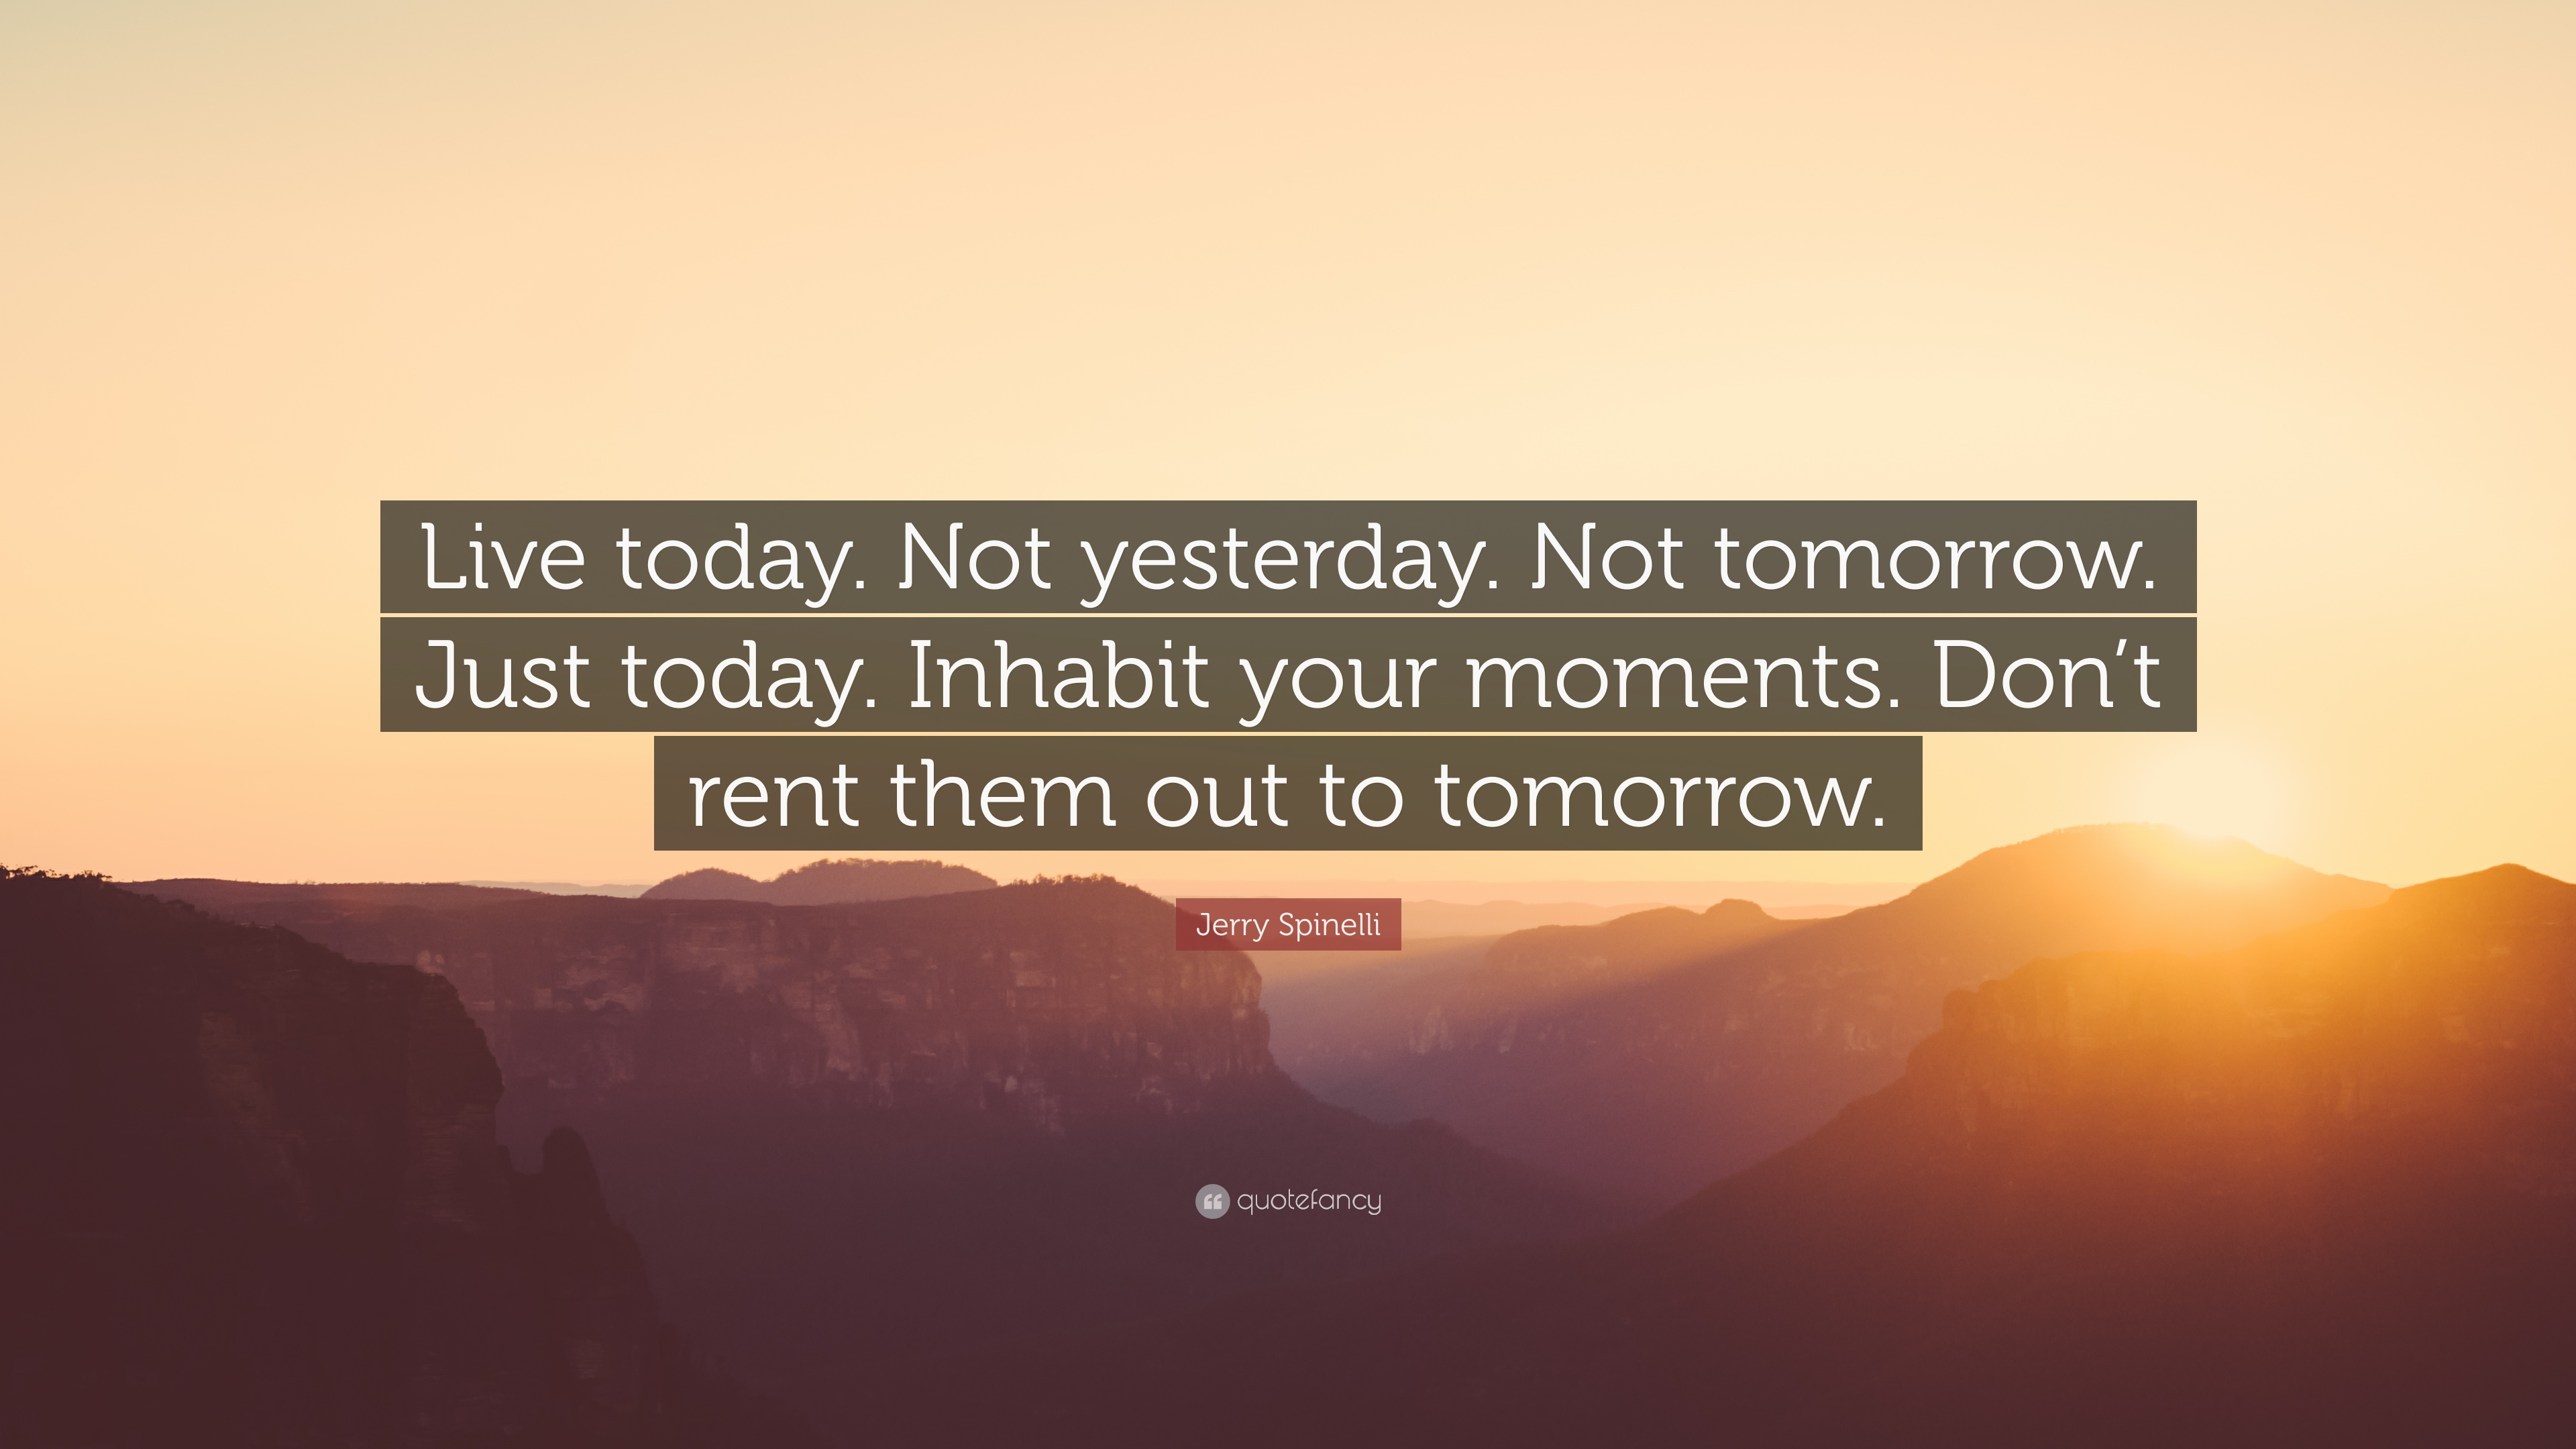 "Jerry Spinelli Quote: ""Live today. Not yesterday. Not tomorrow. Just today. Inhabit your moments. Don't rent them out to tomorrow."" (9 wallpapers) - Quotefancy"